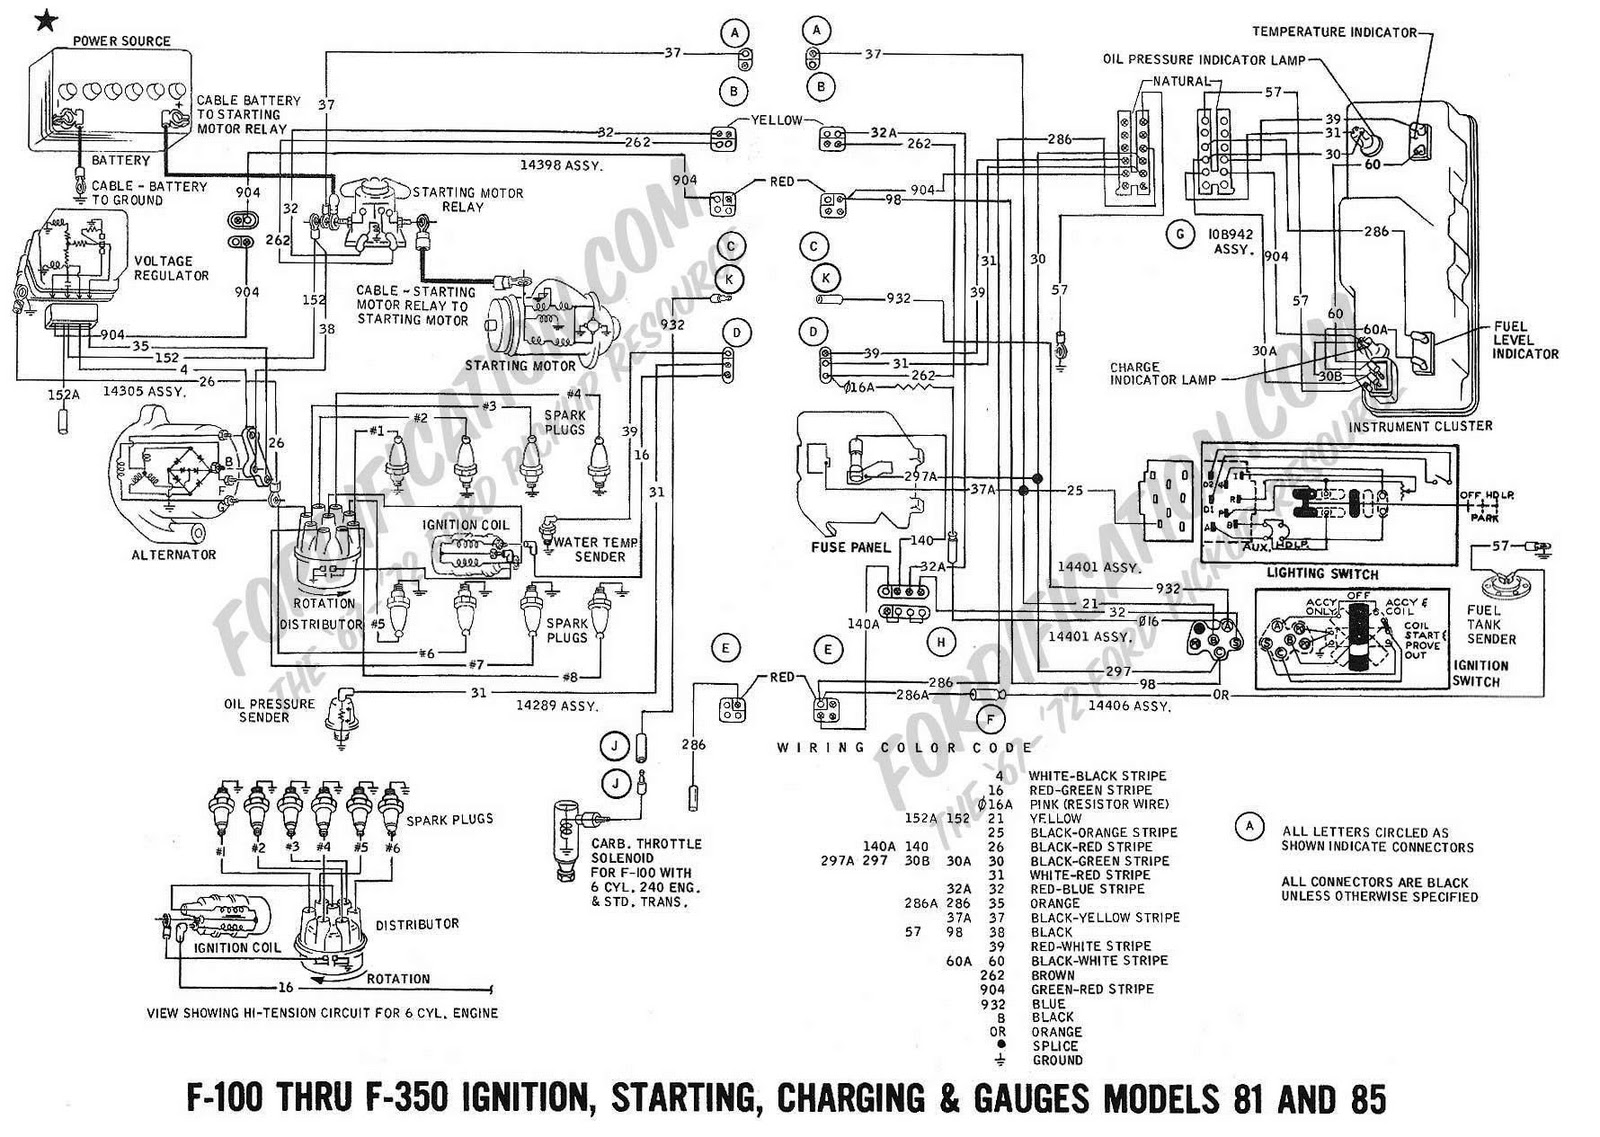 65 Ford Pickup Wiring Harness - Great Installation Of Wiring Diagram  F Wiring Harness on f550 wiring harness, f1 wiring harness, gt wiring harness, f150 wiring harness, f650 wiring harness, ranger wiring harness, f15 wiring harness, mustang wiring harness, f350 wiring harness,